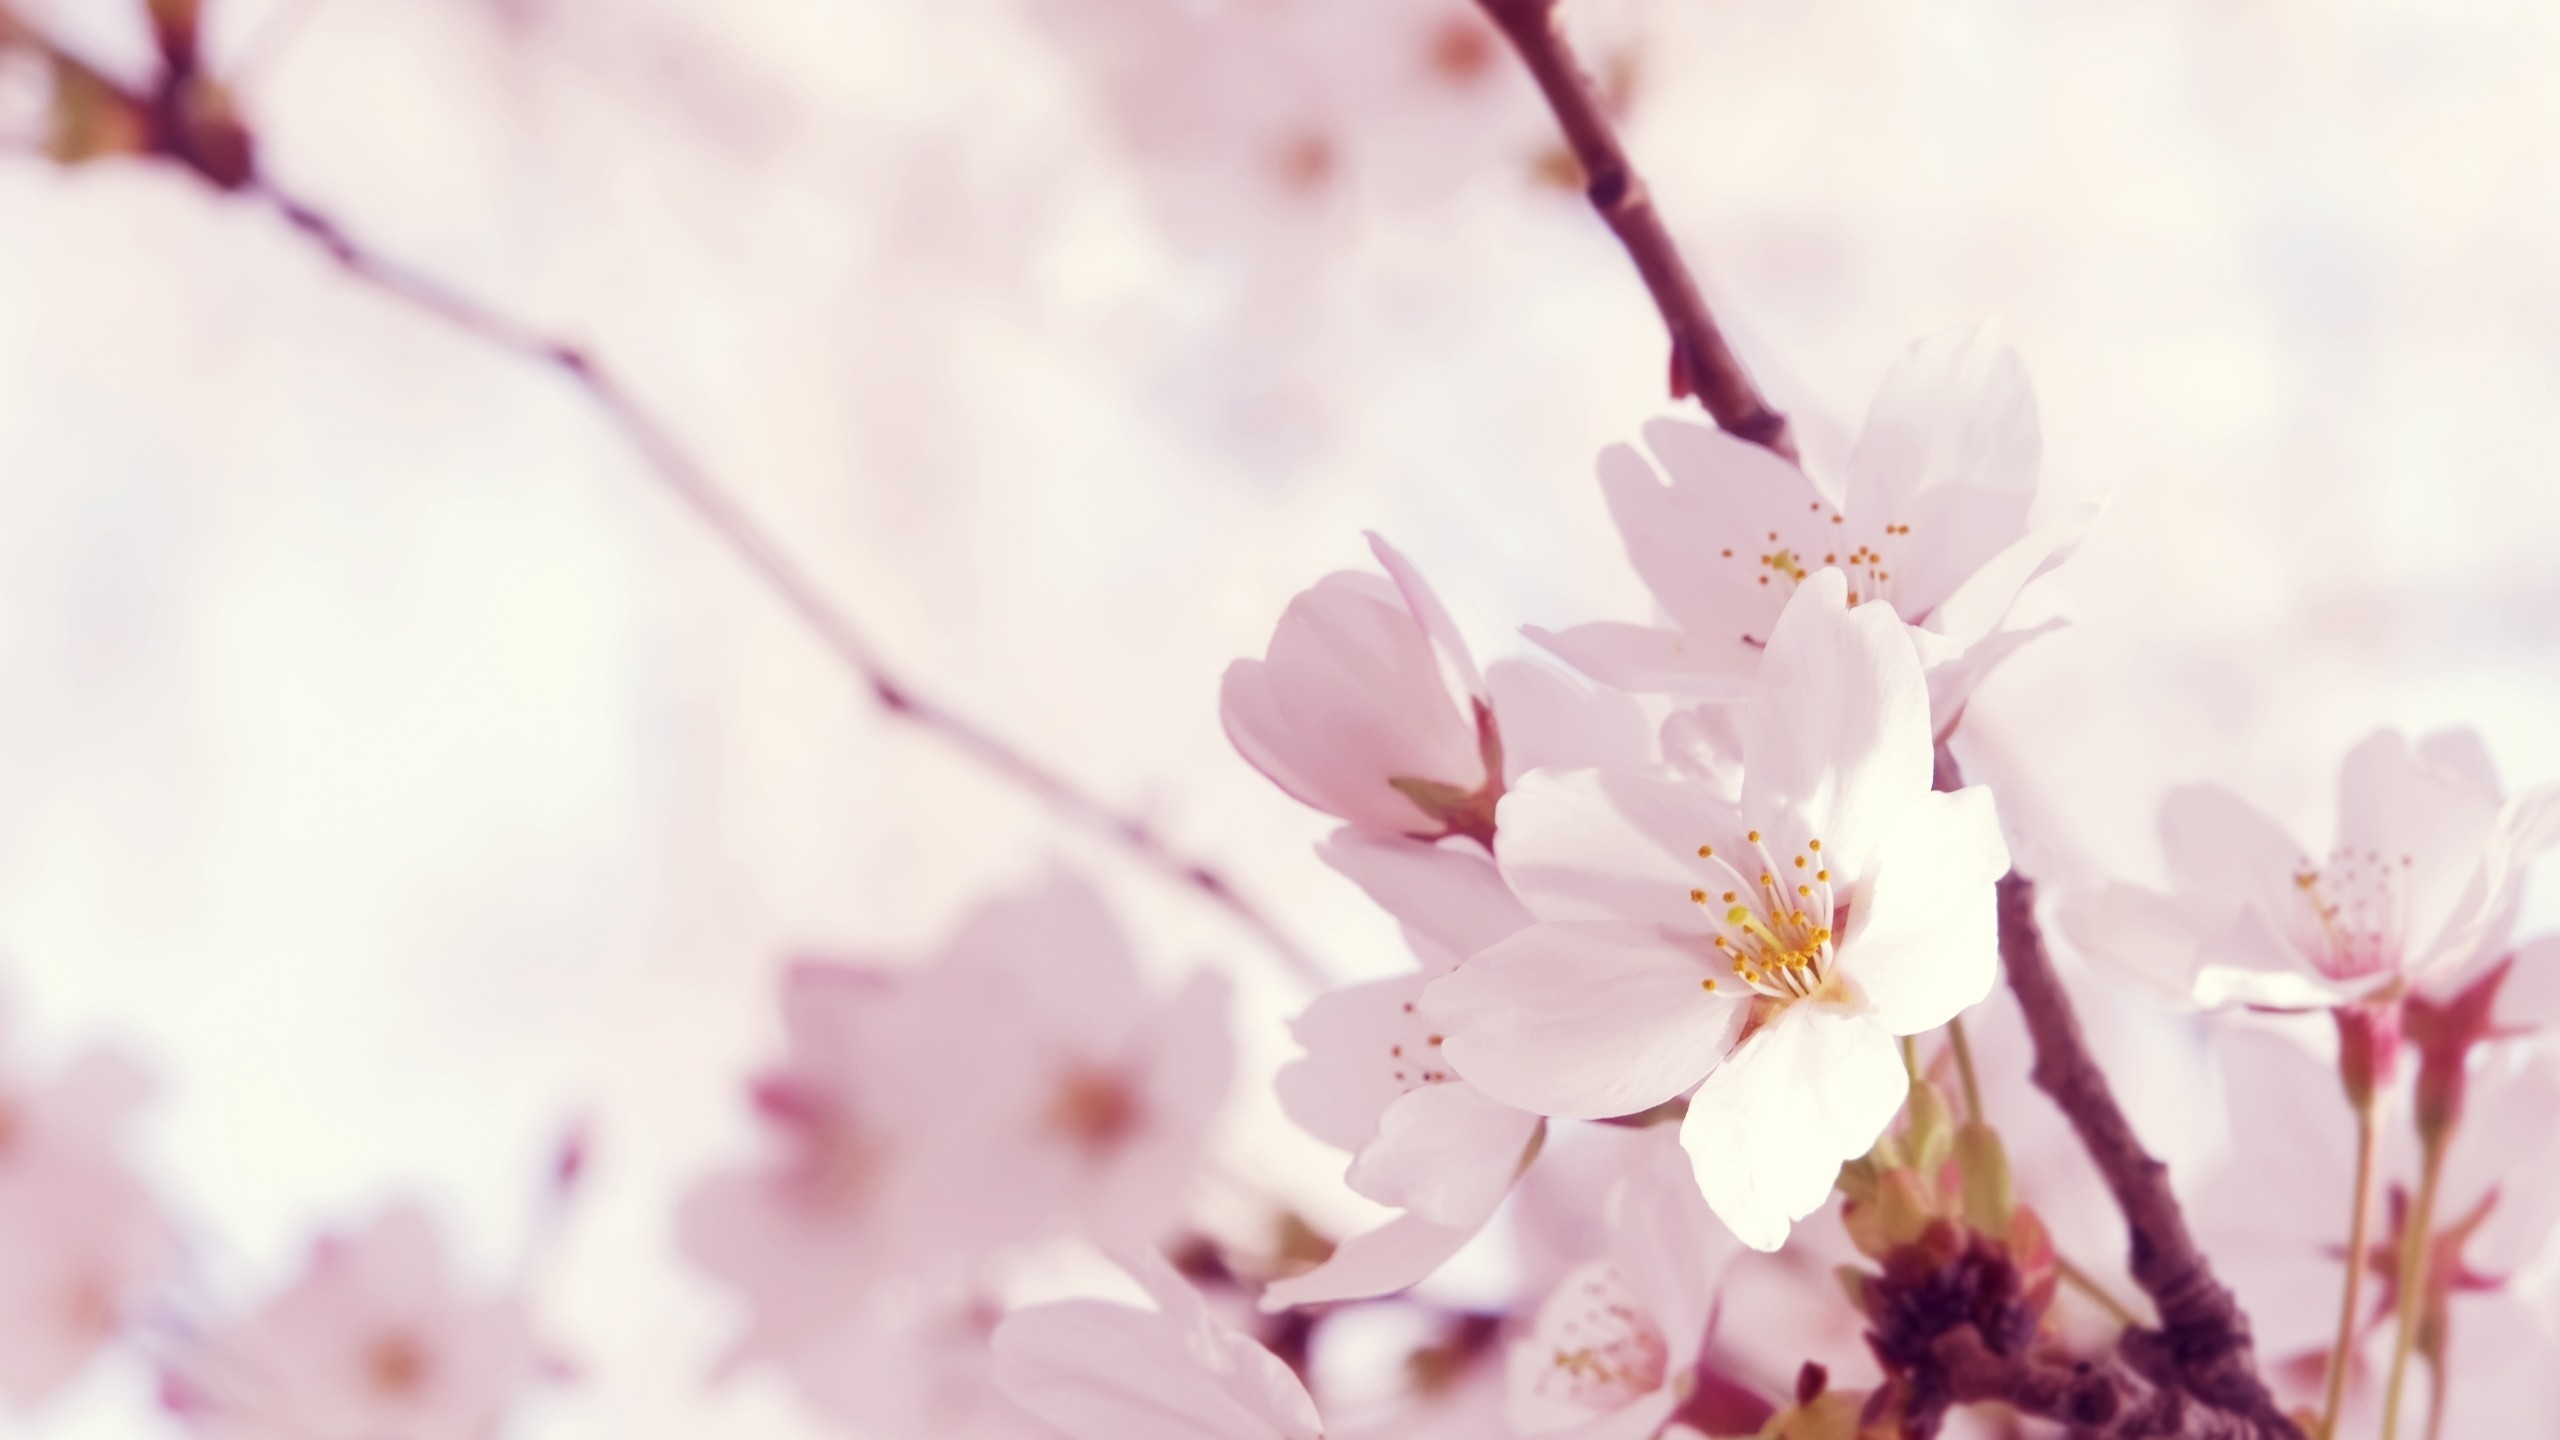 4. pink-and-white-wallpaper11-600×338